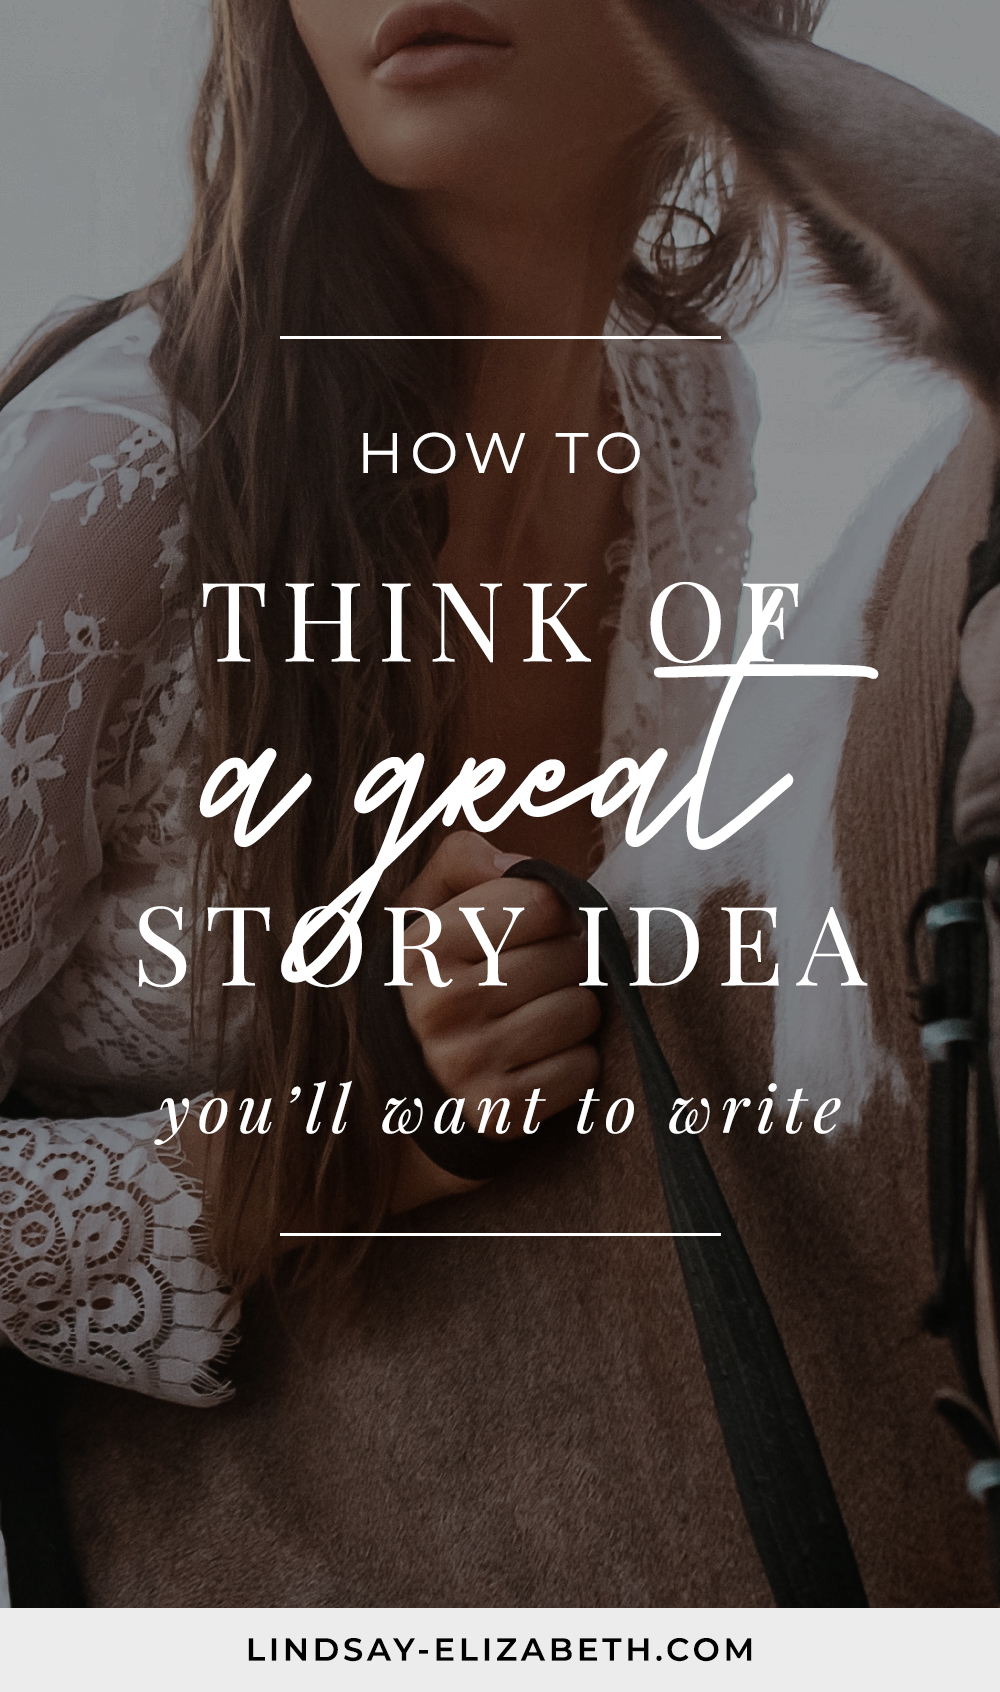 Are you ready to write a book but aren't sure which of your ideas to choose from, or simply aren't inspired enough by any of the ones you have and want something fresh? Follow these tips for coming up with a story idea you'll be able to commit to long-term, including some tips for choosing a NaNoWriMo project.